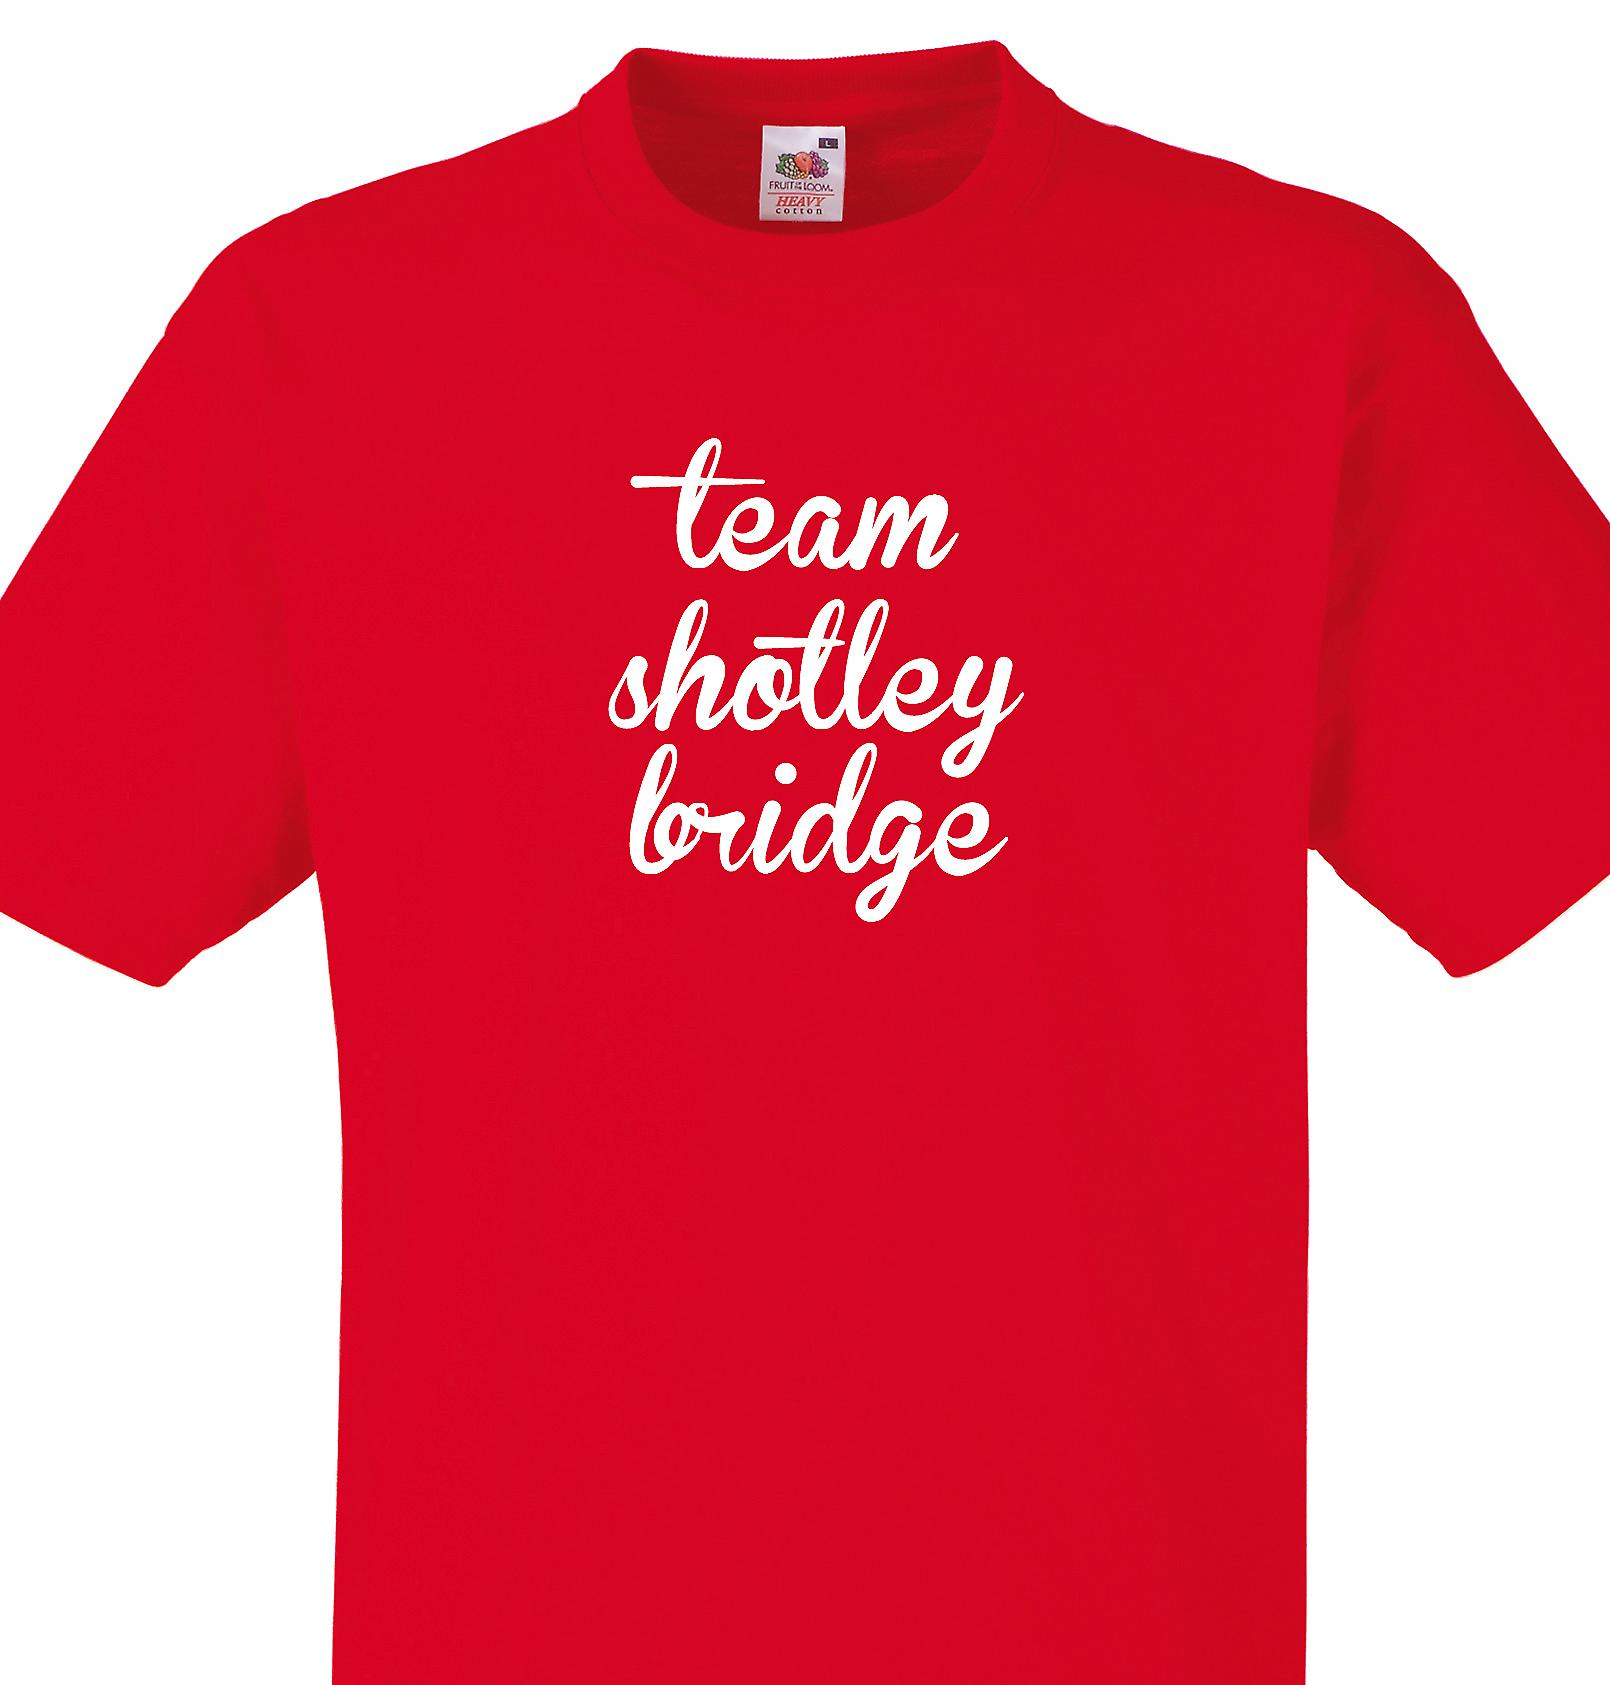 Team Shotley bridge Red T shirt